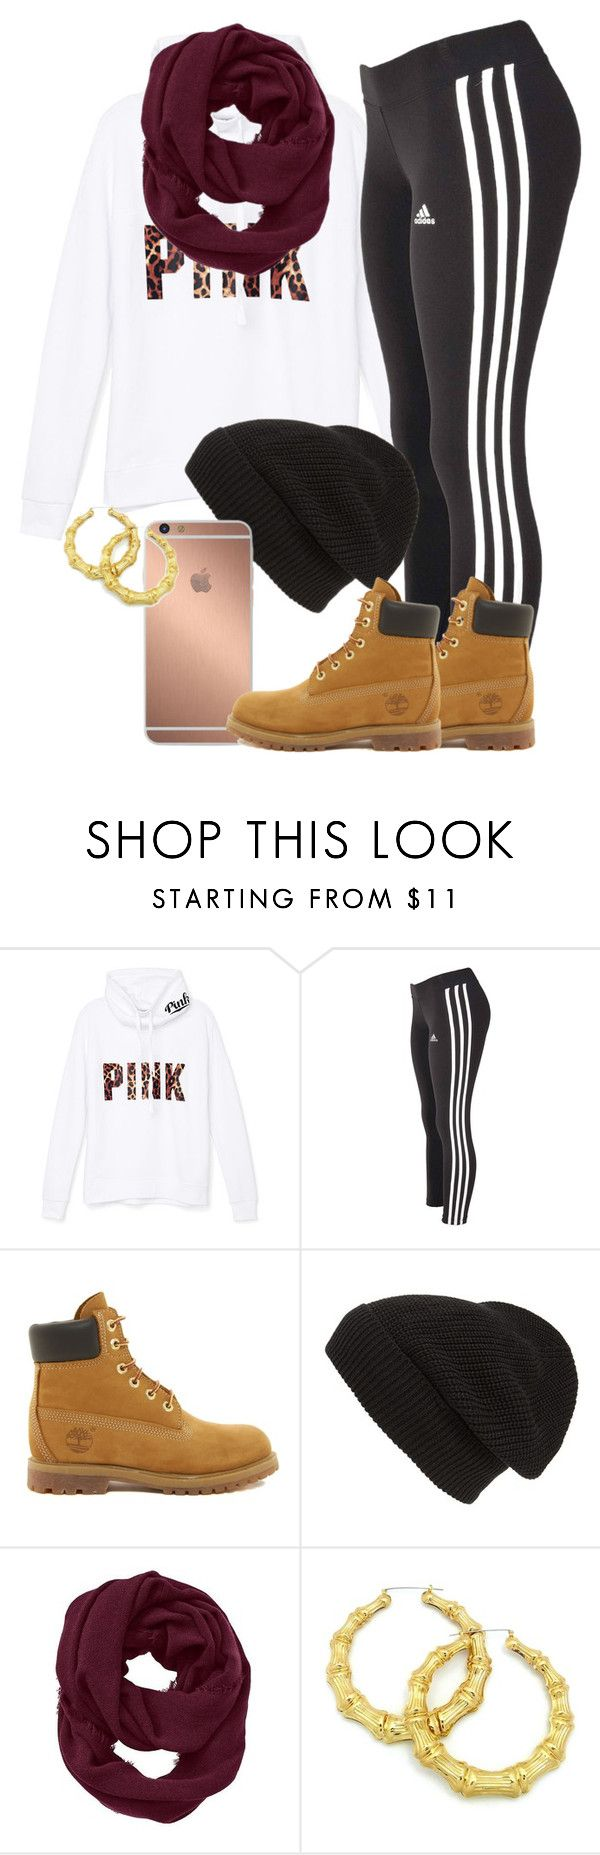 """""""My ootd"""" by thetruthdoesnothavetohurt ❤ liked on Polyvore featuring Victoria's Secret PINK, adidas, Timberland, Phase 3, Mura and Athleta"""